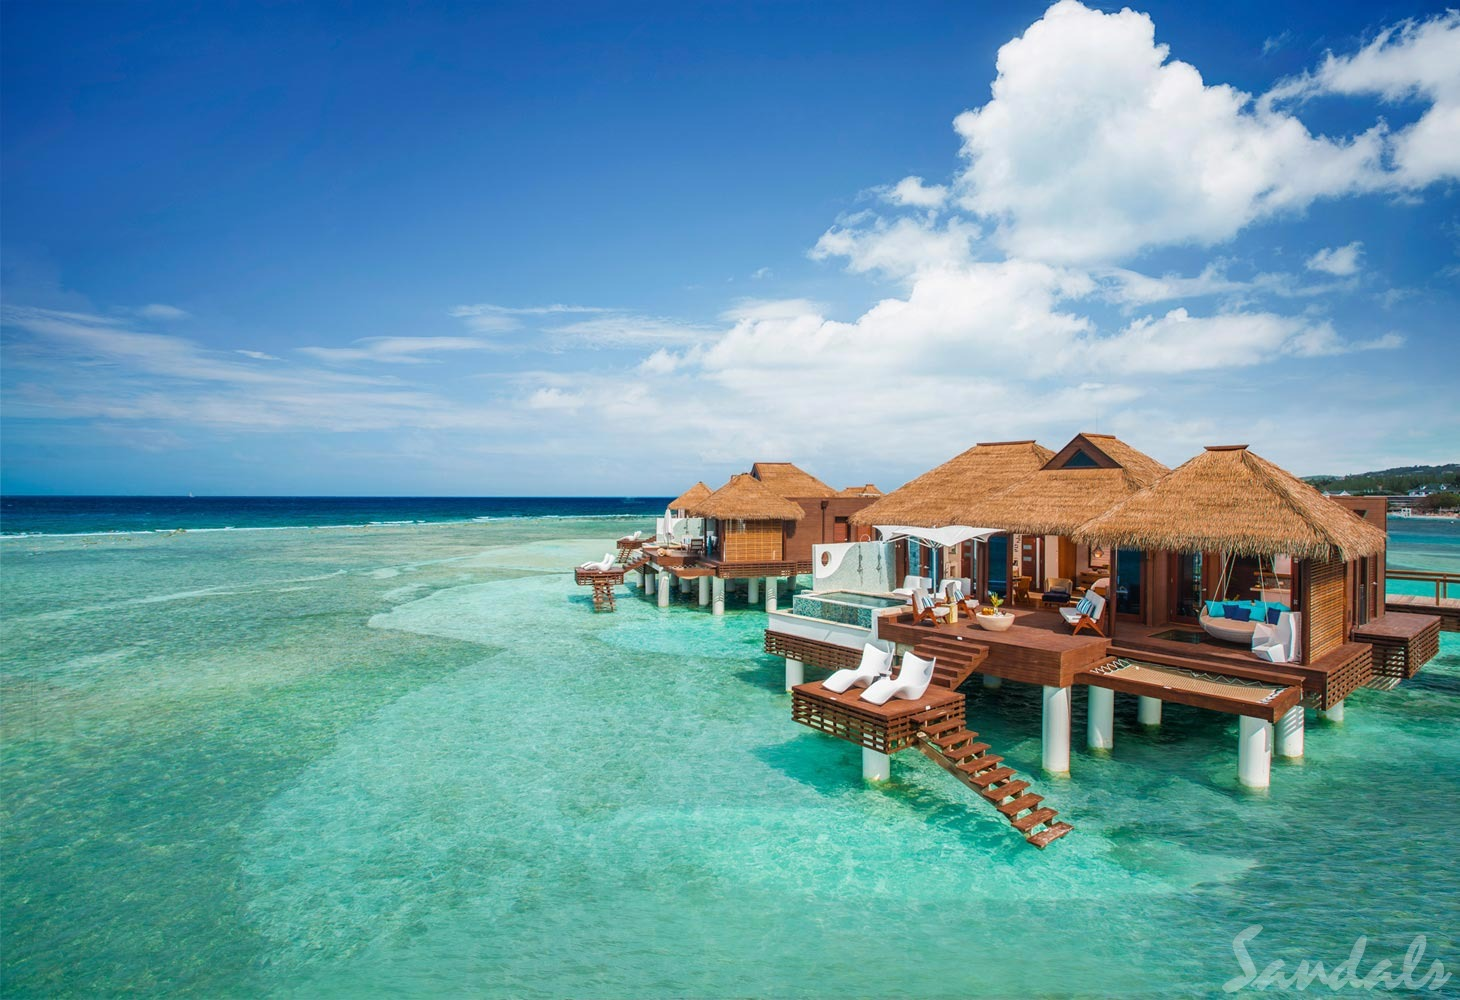 Overwater Honeymoon Villa with private pool at Sandals Royal Caribbean in Montego Bay Jamaica